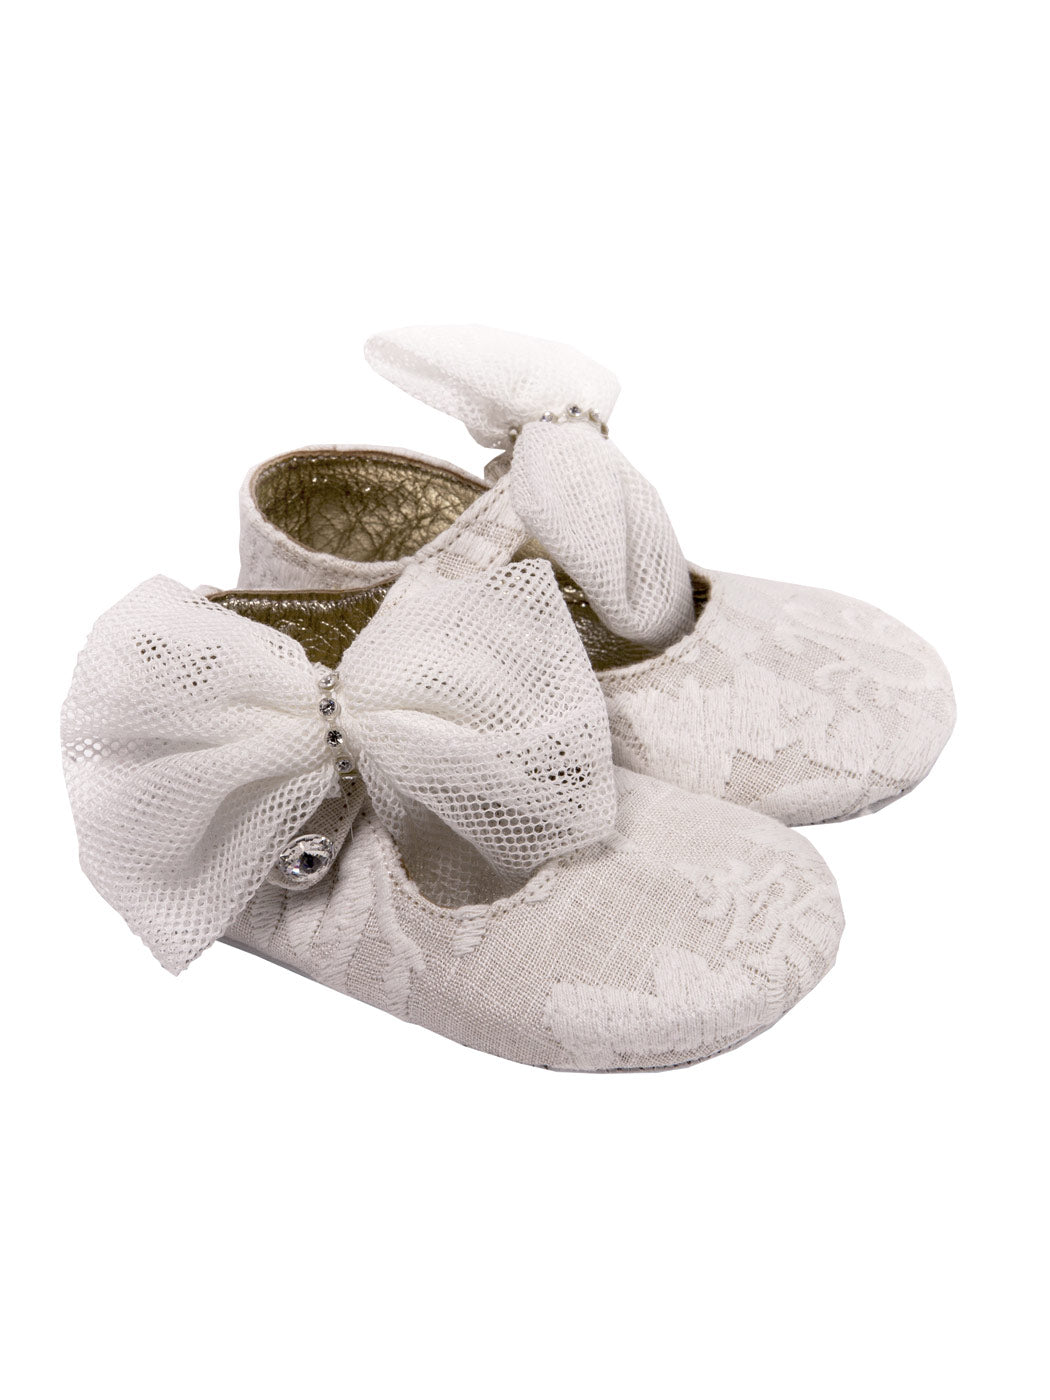 Merida baby Shoes